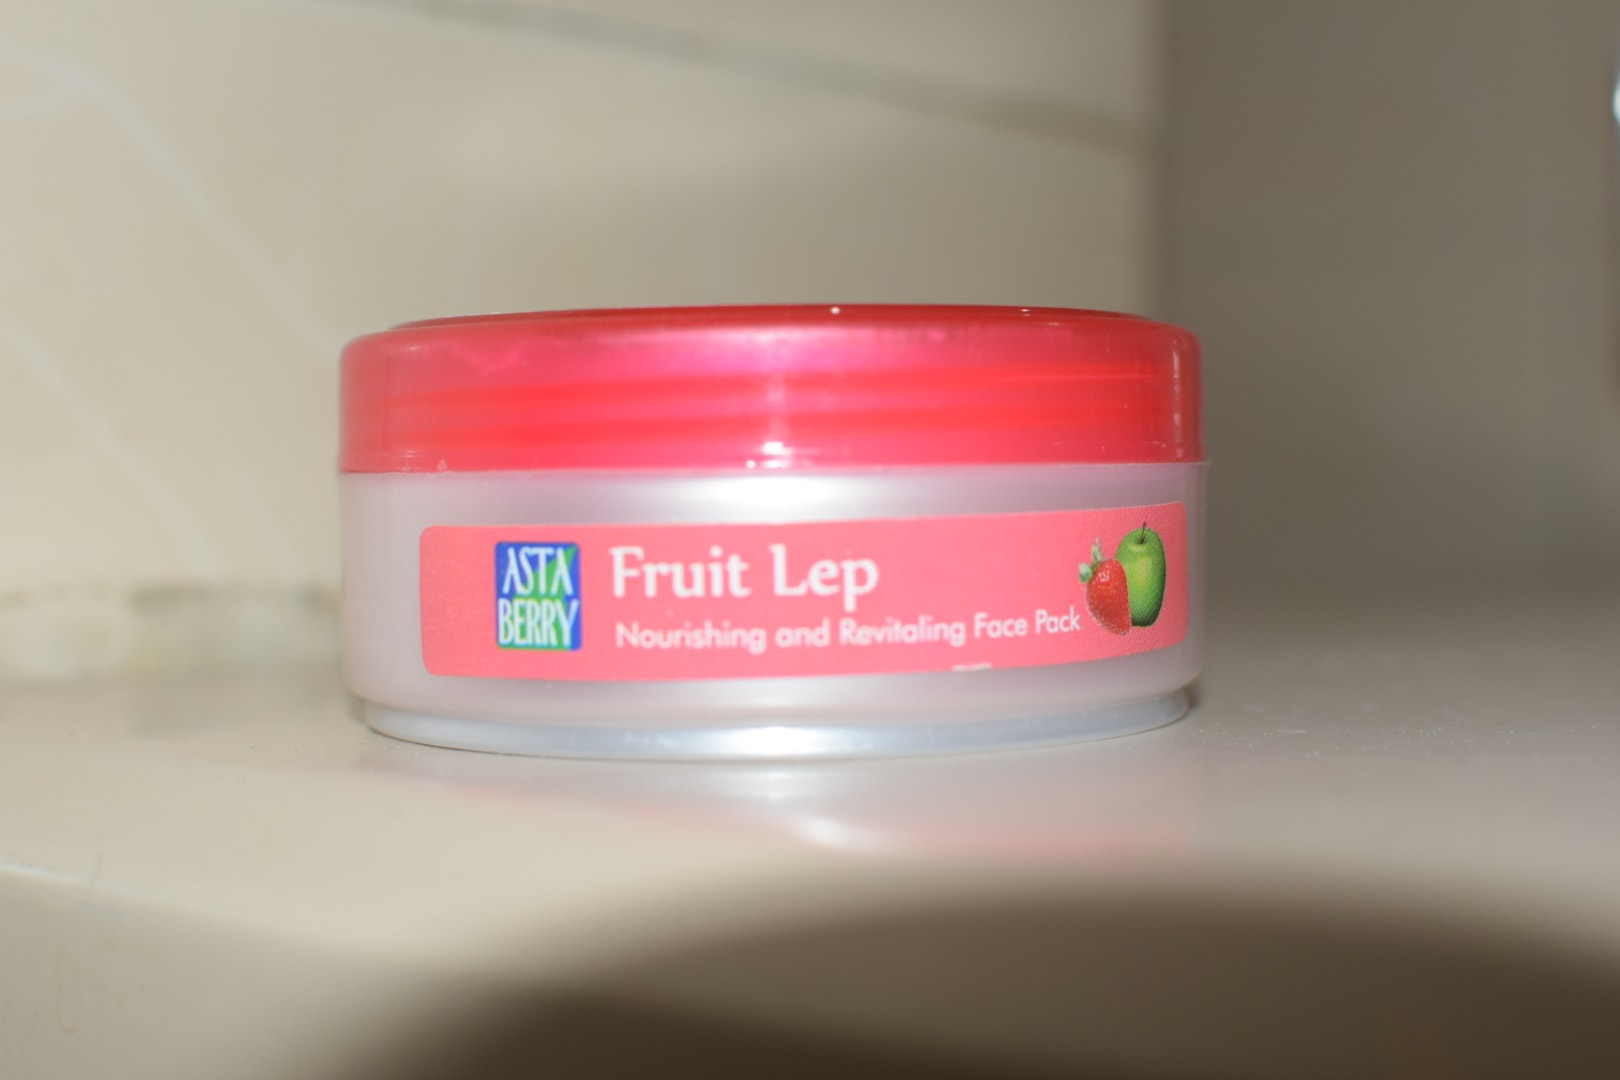 Astaberry's Fruit Lep Review